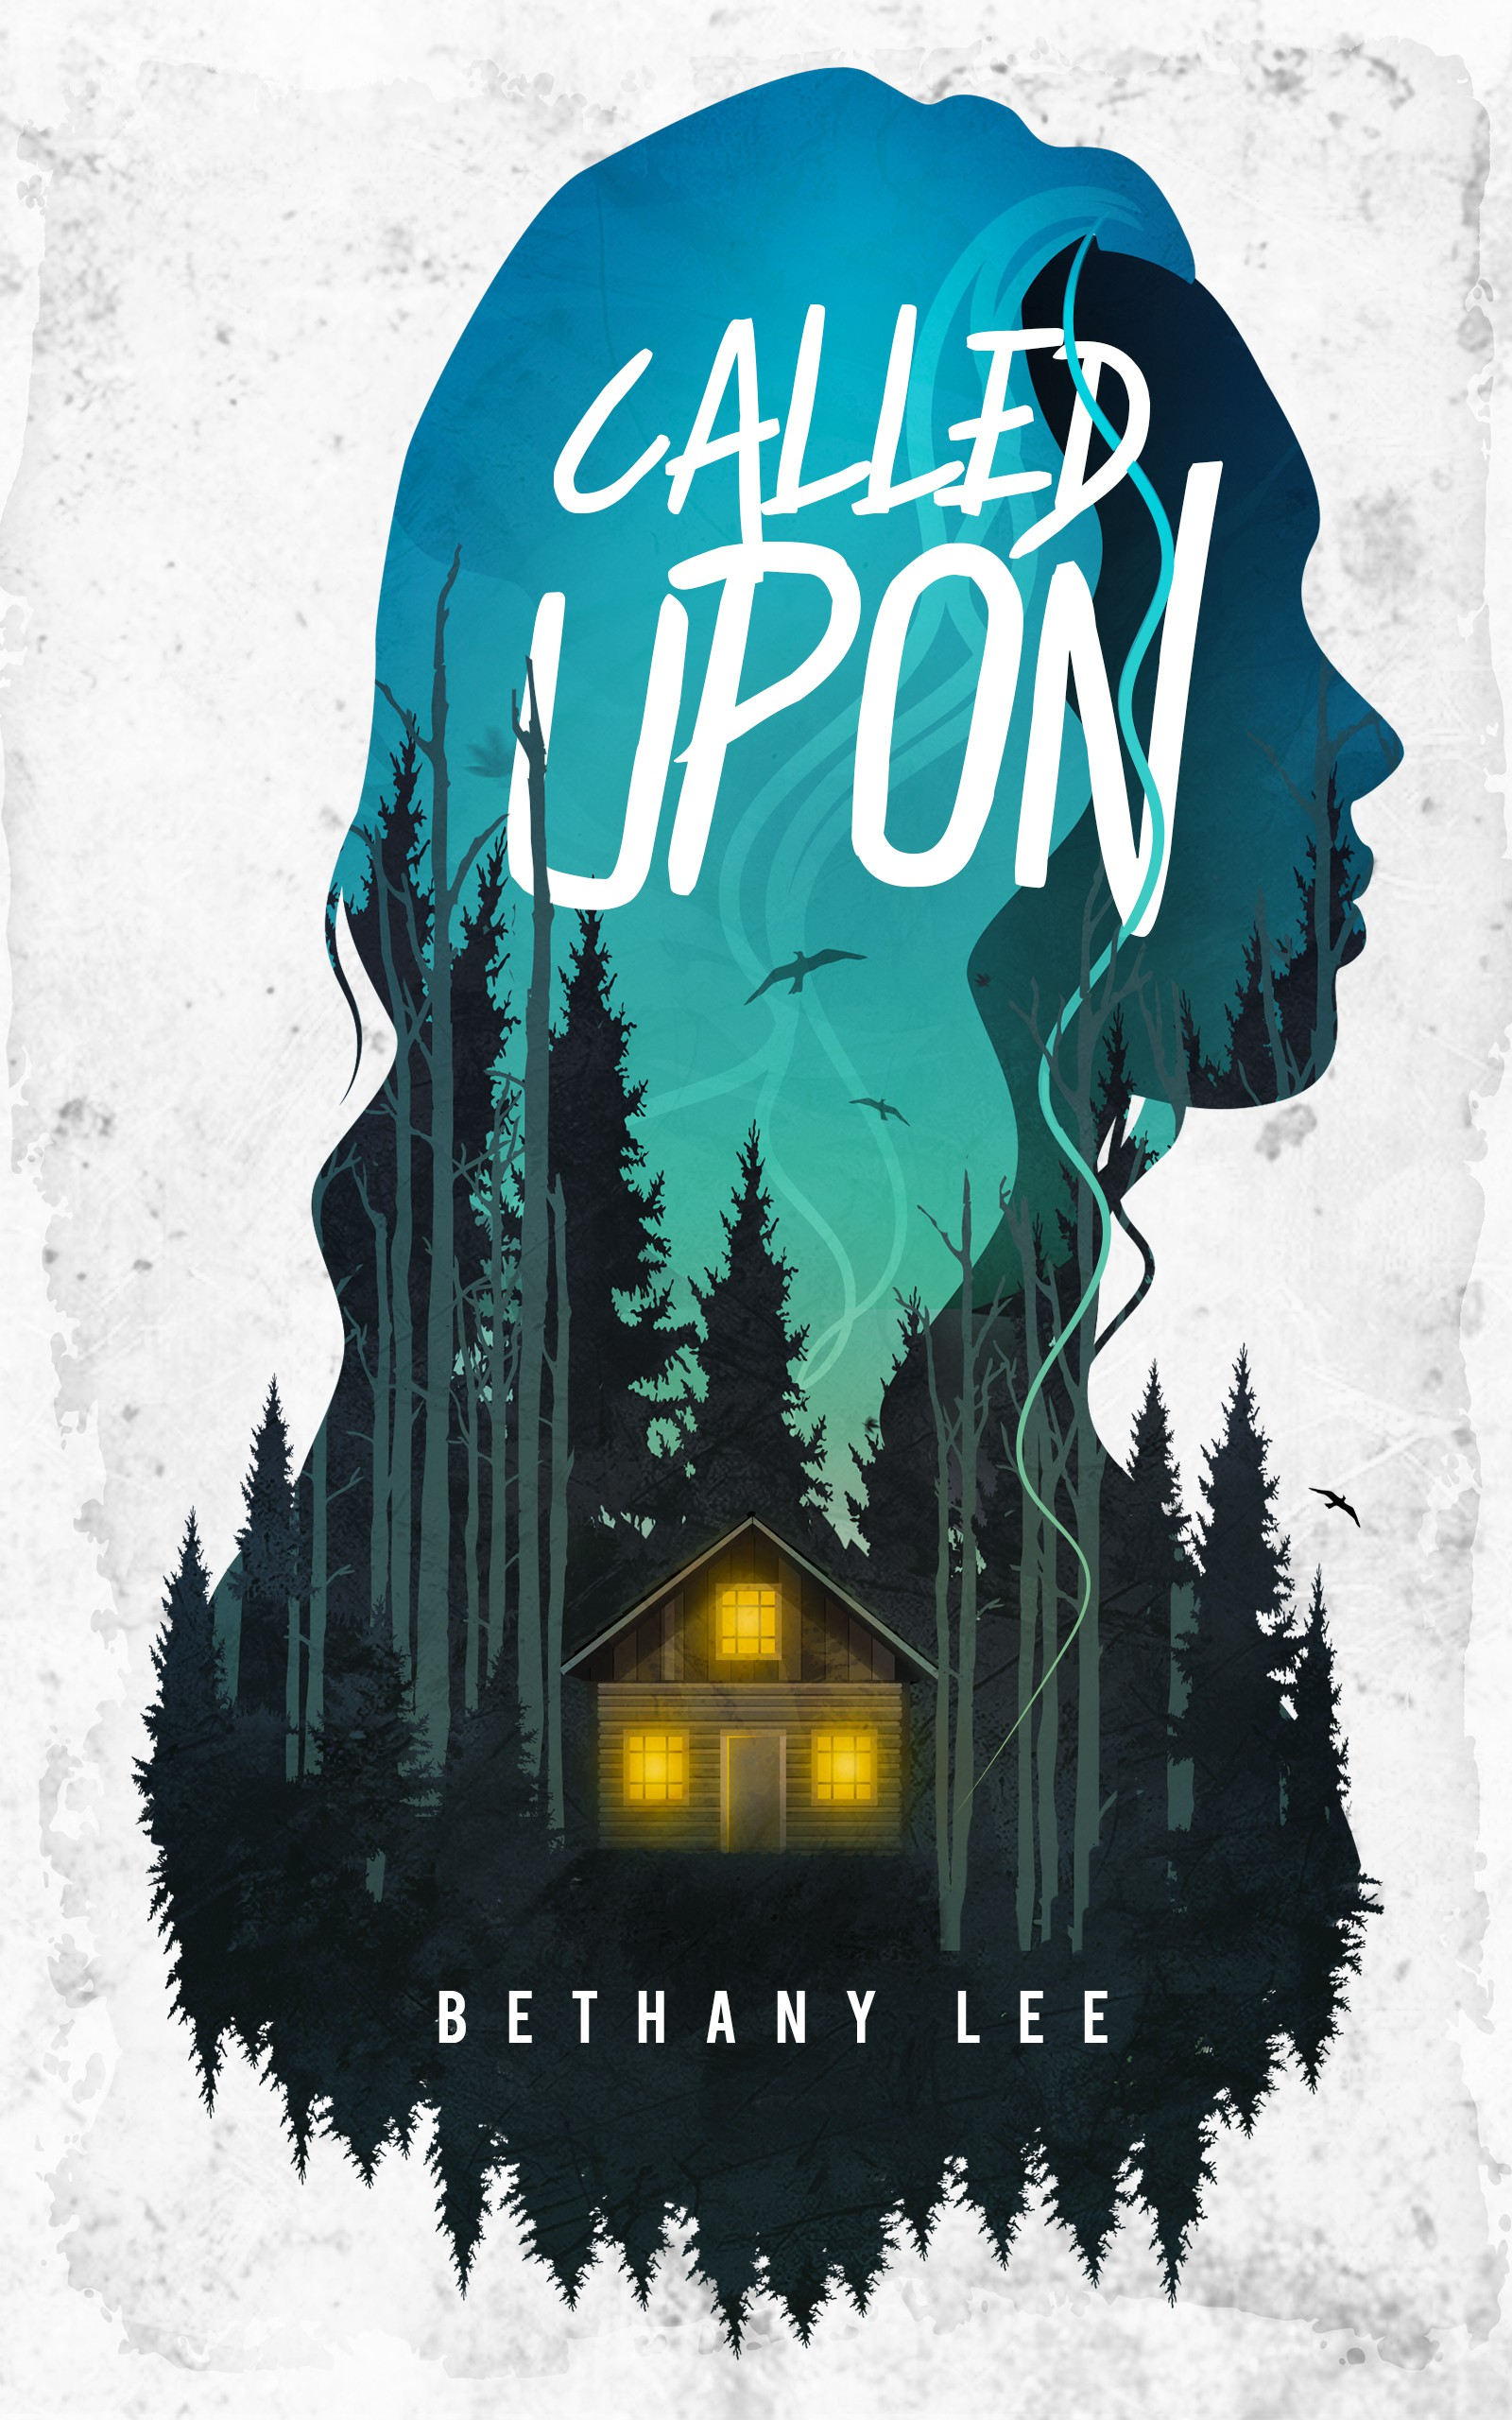 YA Thriller Book Cover with a Mysterious Alpine Feel